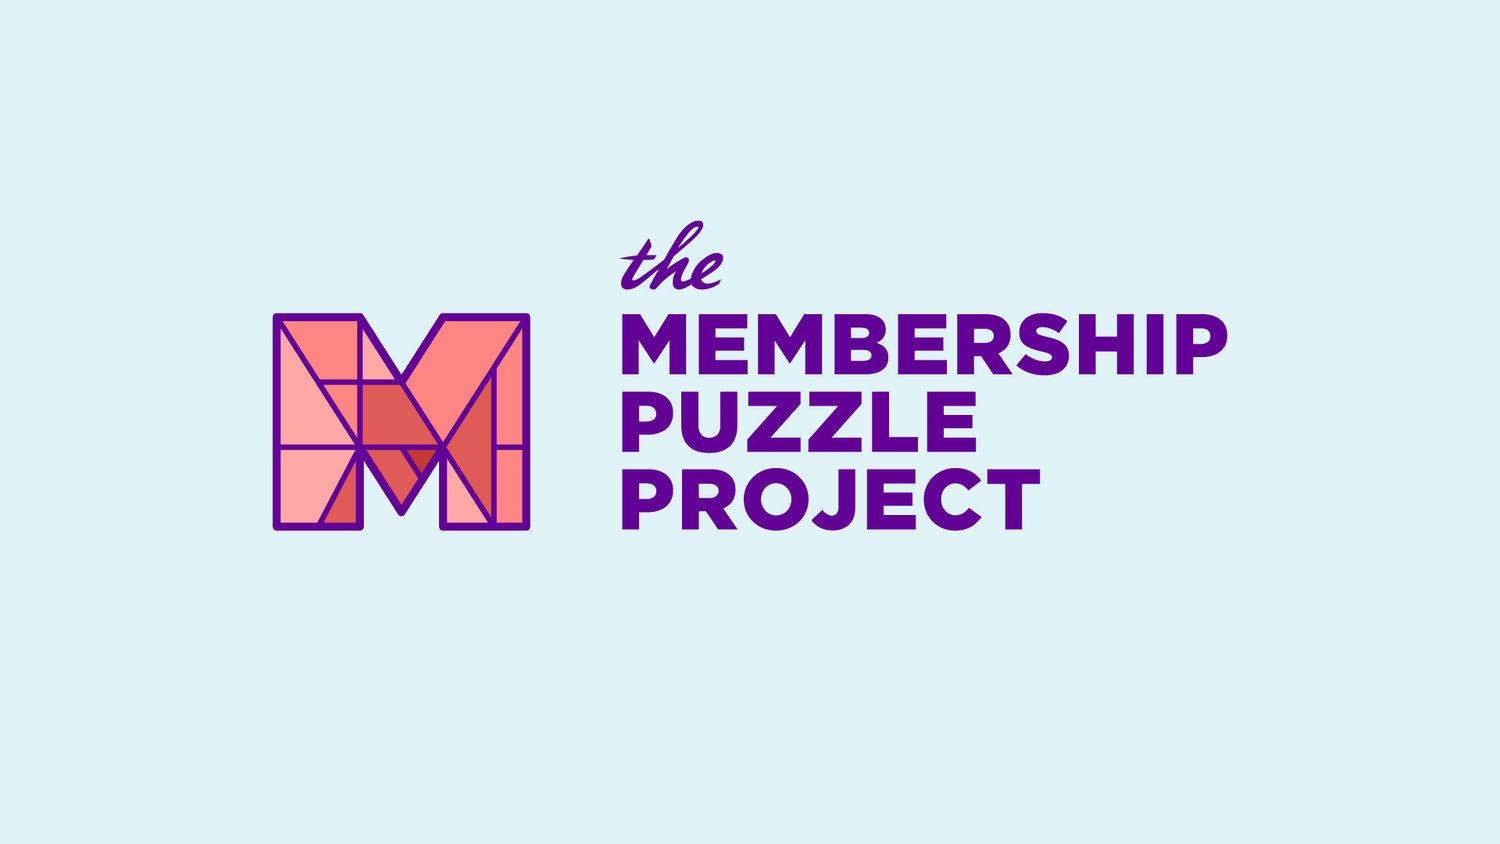 The Membership Puzzle Project is founded by